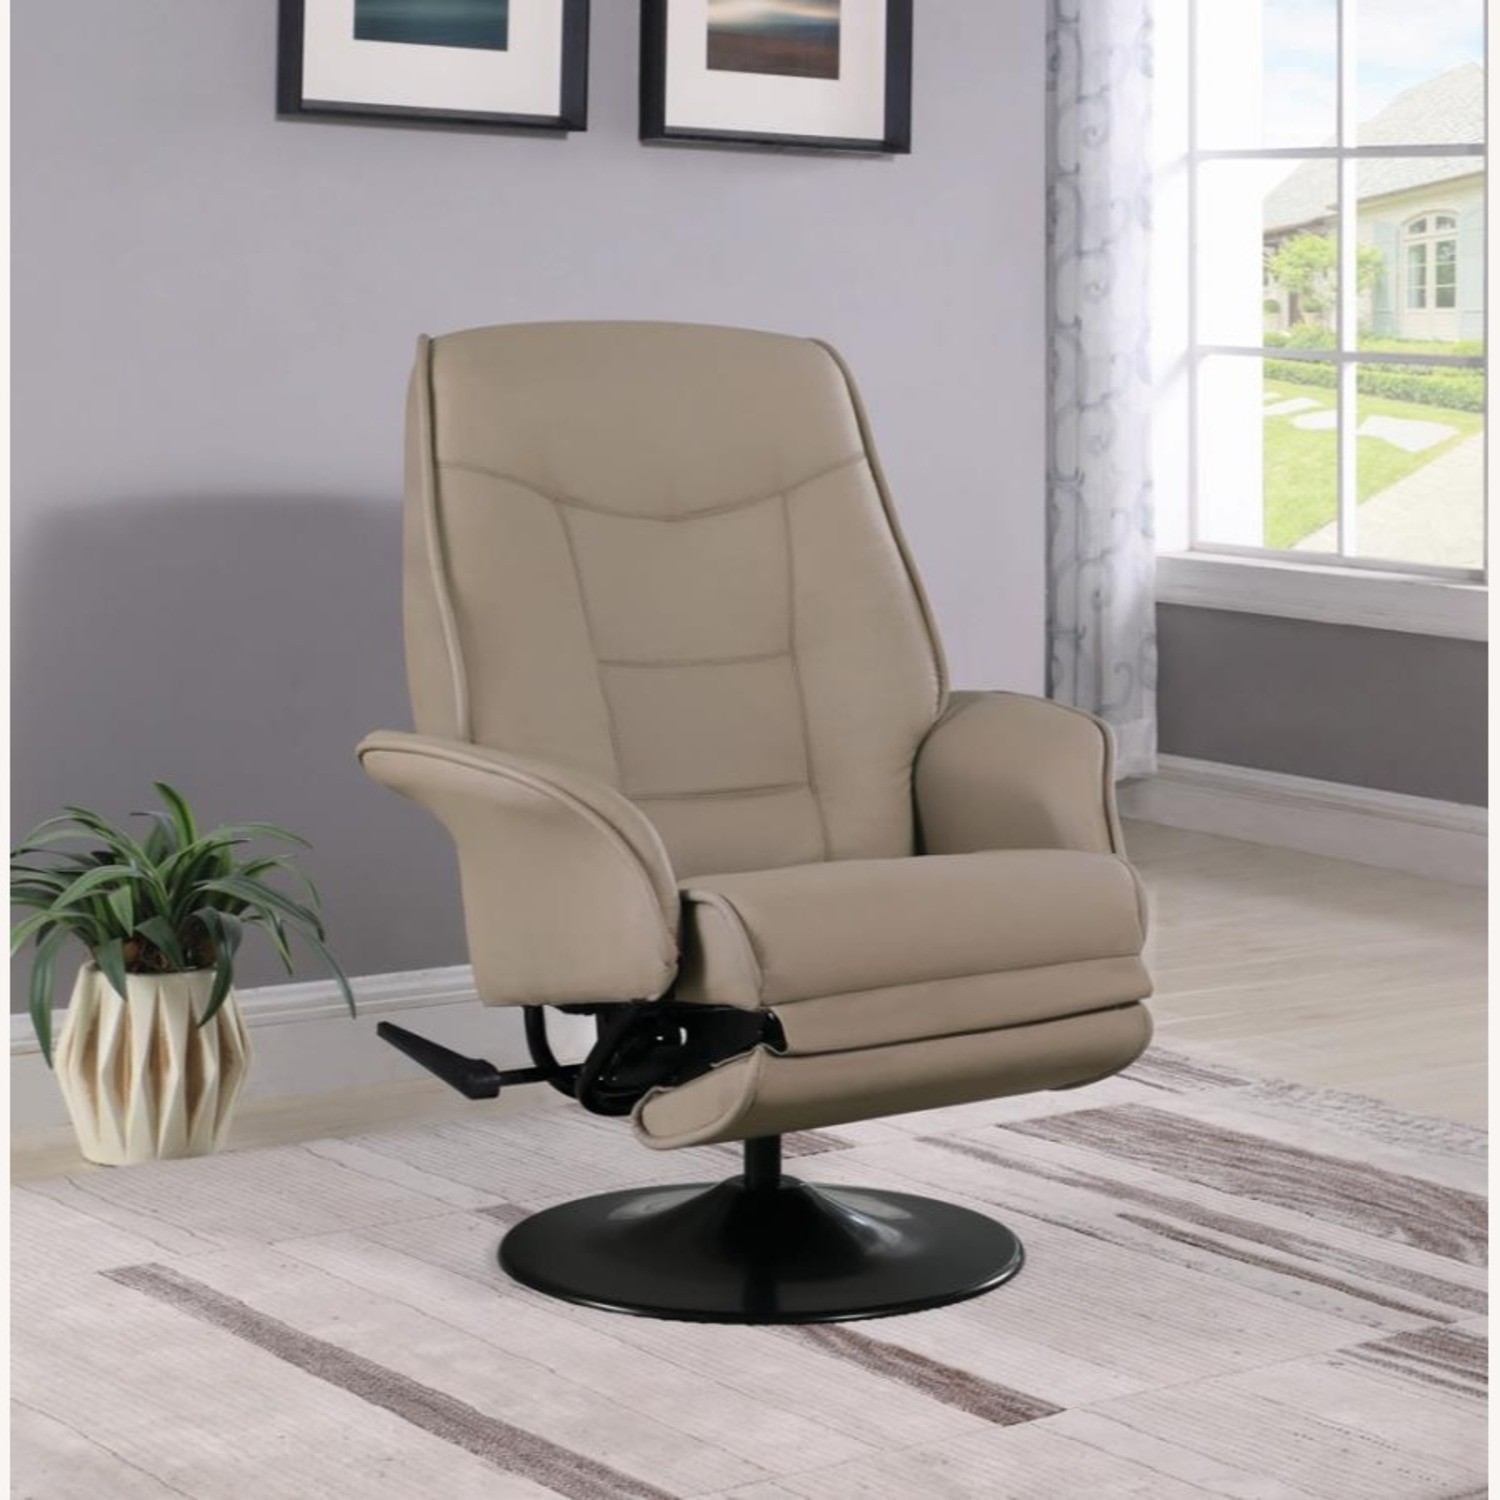 Swivel Recliner In Classic Beige Leatherette - image-7